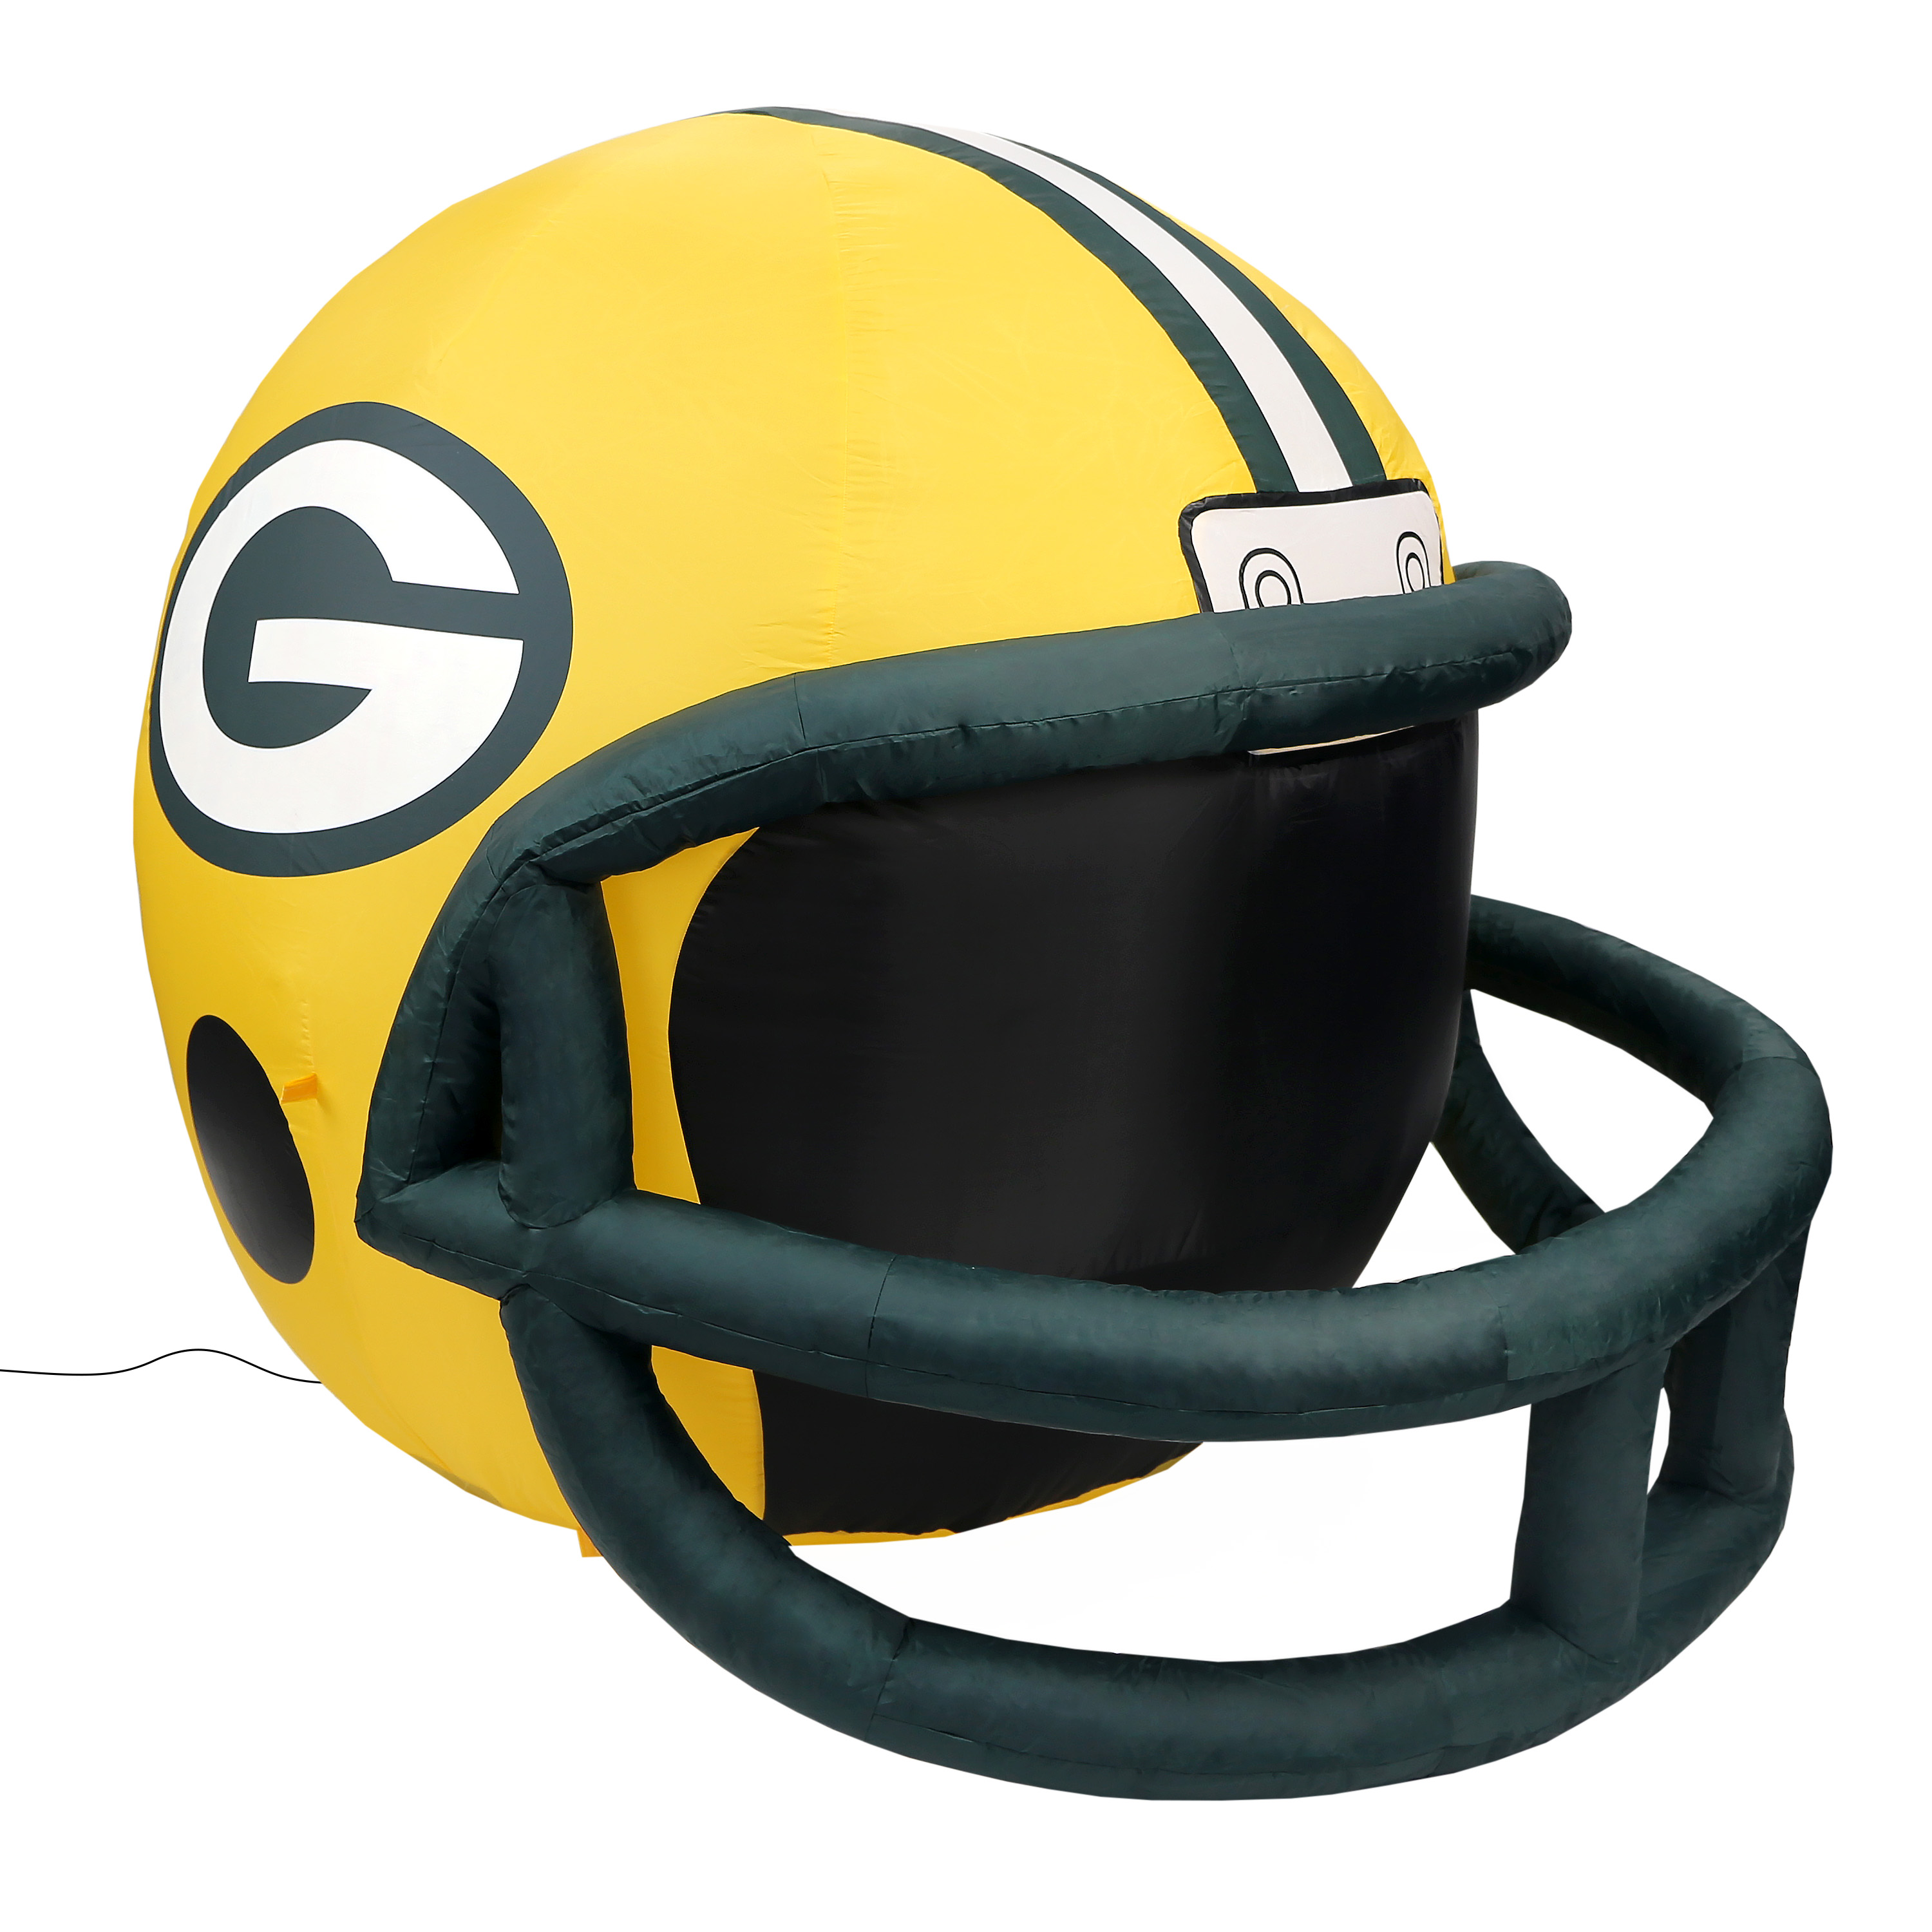 NFL Green Bay Packers Team Inflatable Lawn Helmet, One Size, Yellow